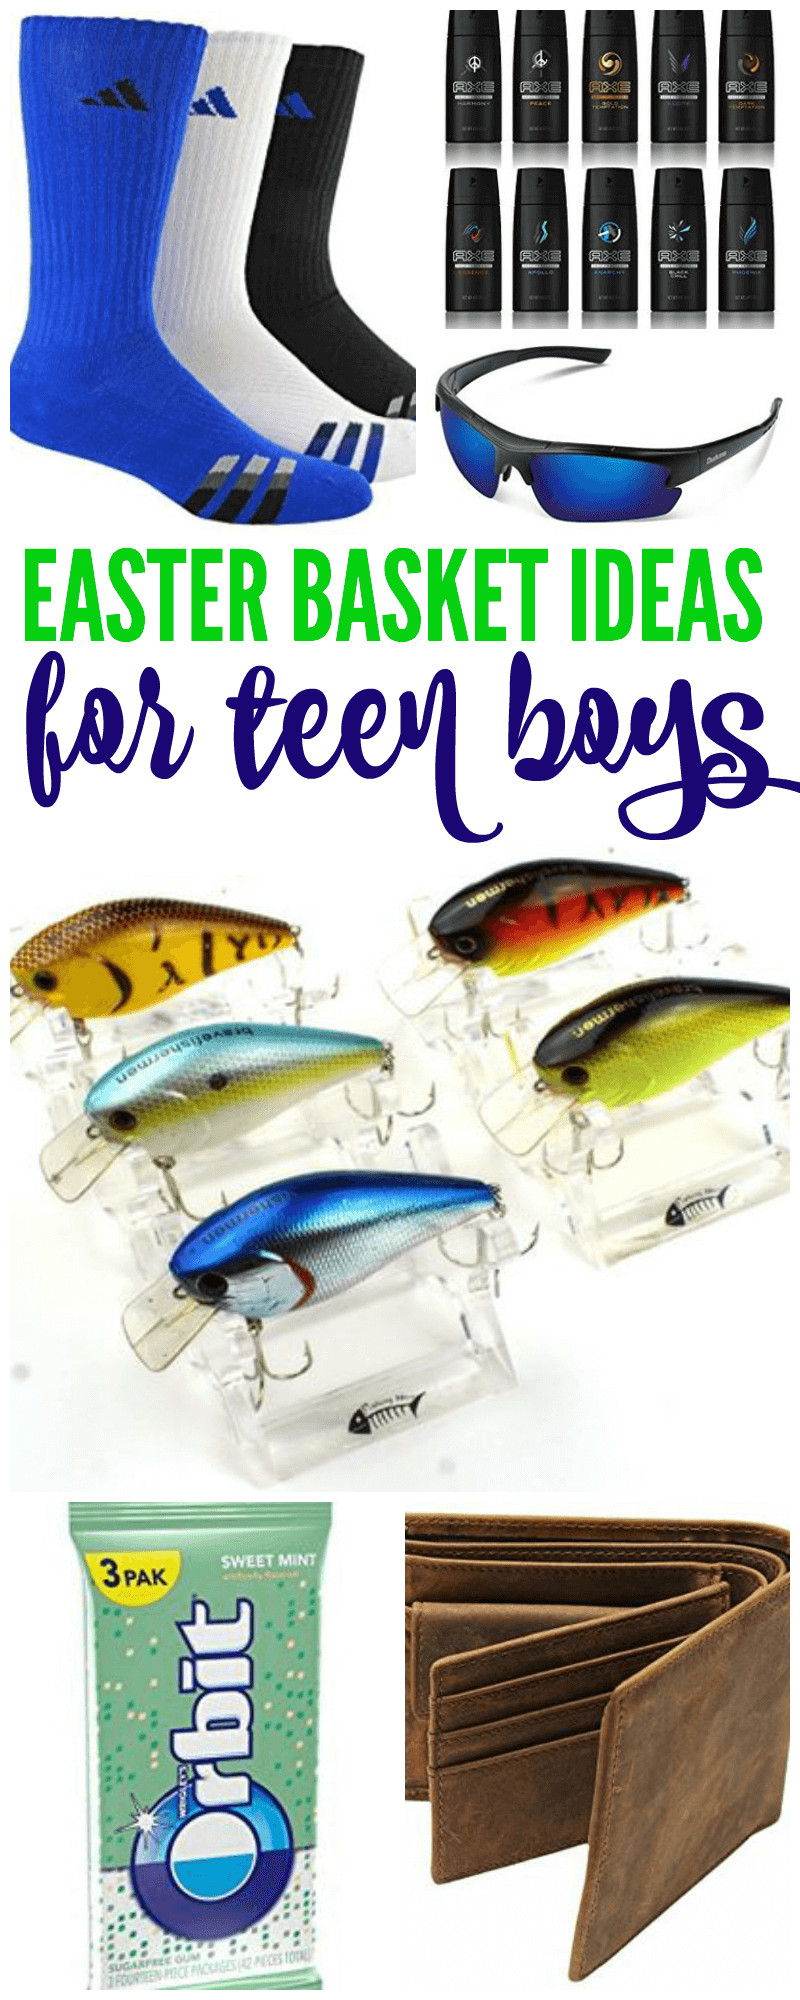 Best ideas about Easter Gift Ideas For Boys . Save or Pin Easter Basket Ideas for Teen Boys Now.